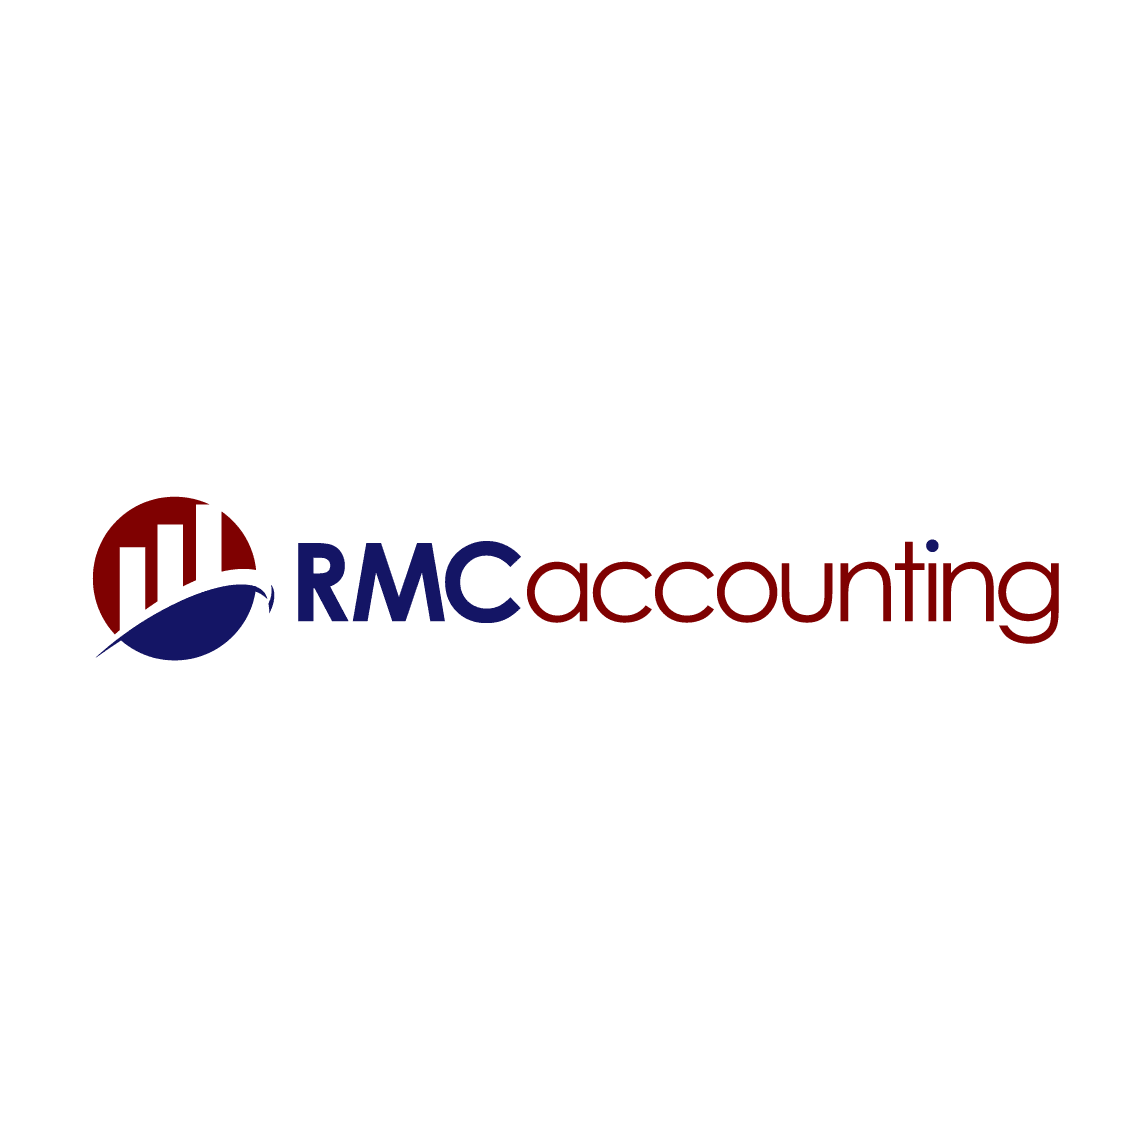 RMC Accounting Limited - Wisbech, Cambridgeshire  - 01945 232004 | ShowMeLocal.com